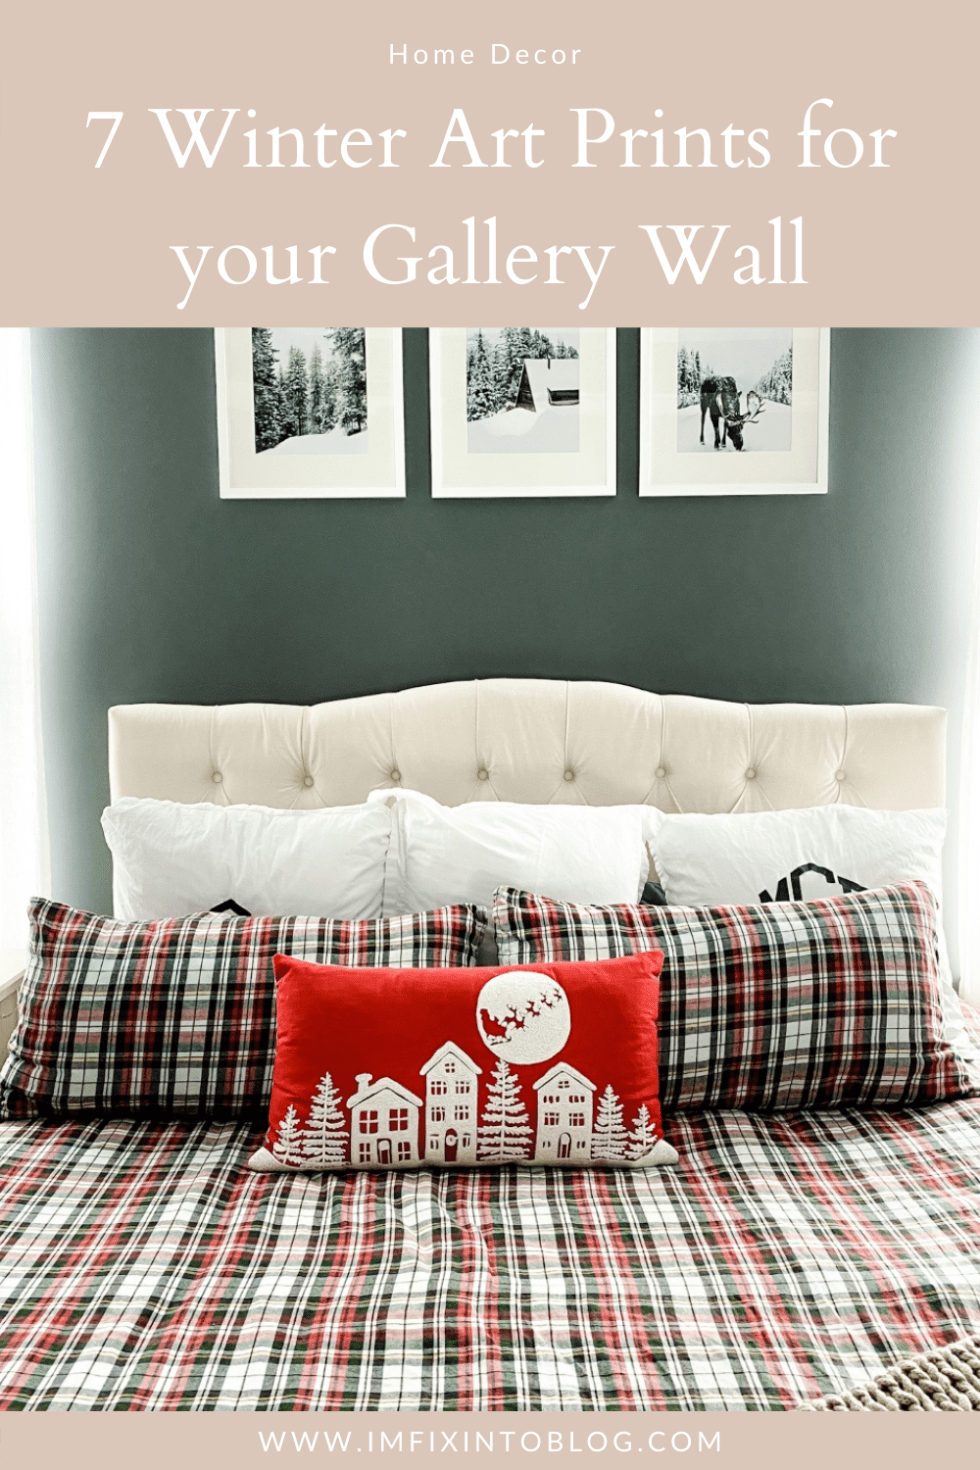 Home Decor: 7 Winter Art Prints for your Gallery Wall - I'm Fixin' To - @imfixintoblog |Winter Art Prints by popular NC life and style blog, I'm Fixin' To: Pinterest image of three winter art prints hanging above a bed with red, white, and green plaid bedding and a white tuft headboard.